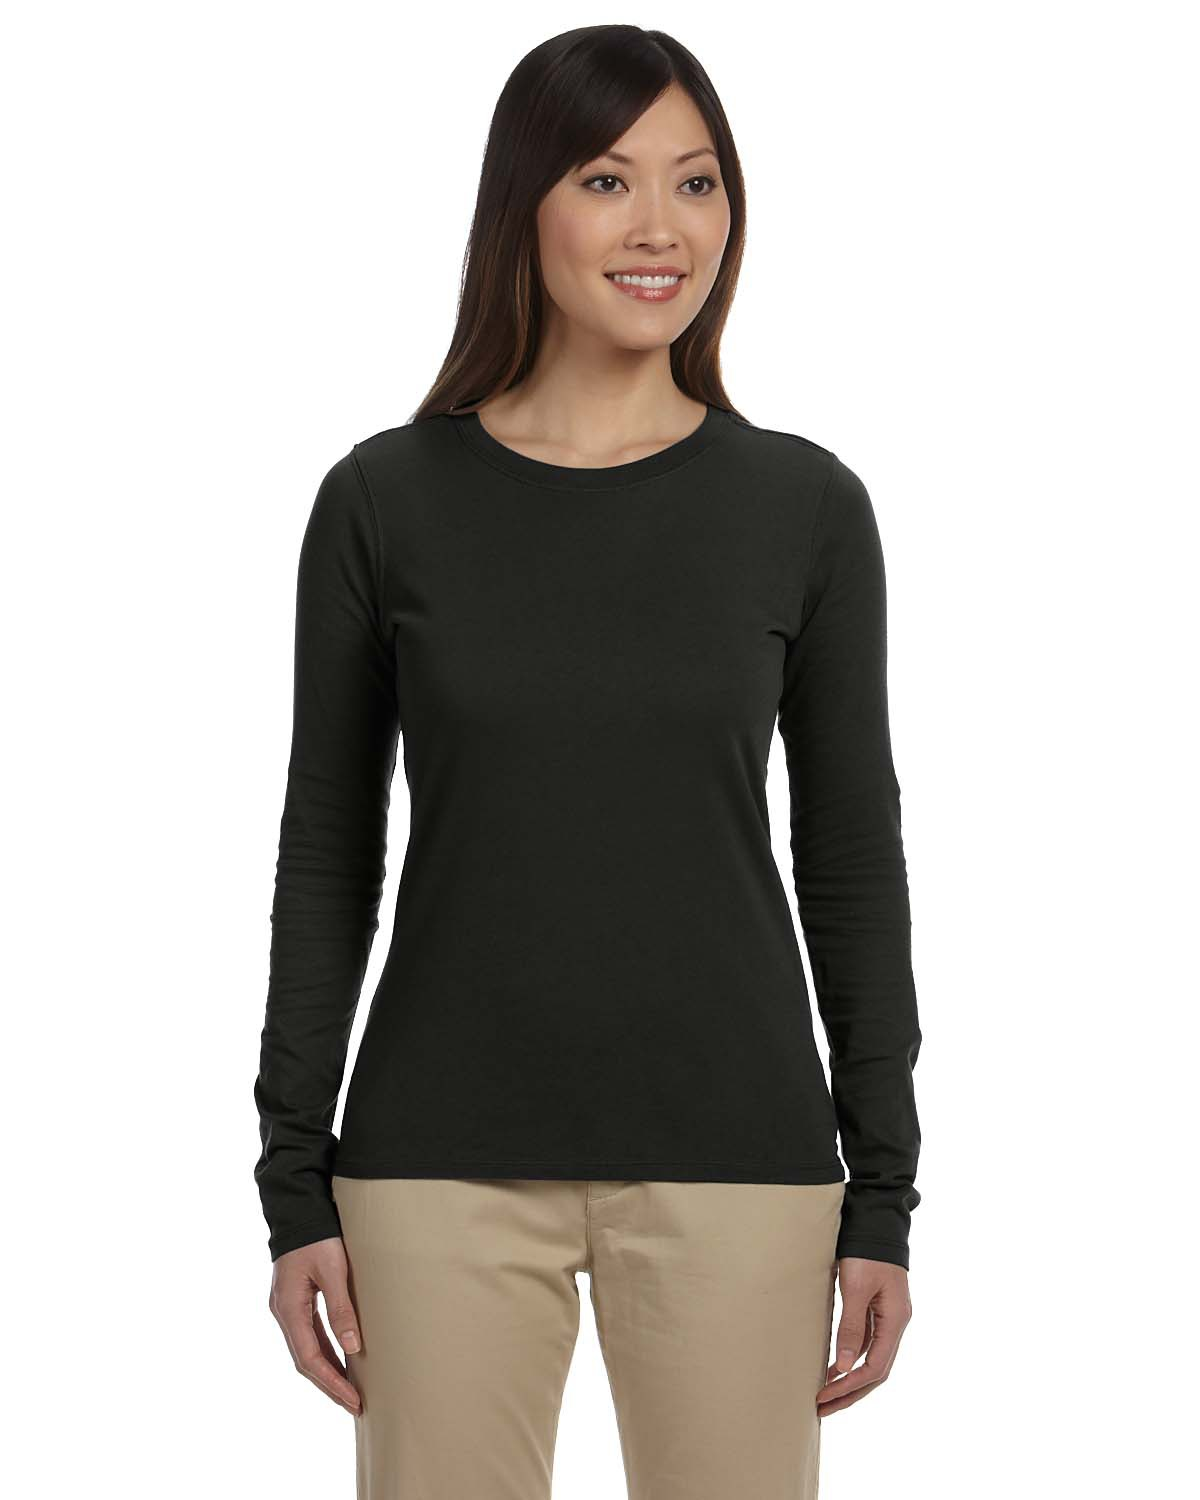 Women's Cotton Shirts & Tops Here at Cotton Mill we carry a great selection of cotton shirts for women with many shirt styles, fabrics and even more colors. Our cotton tops are comfortable, durable, pre-shrunk and easy care.